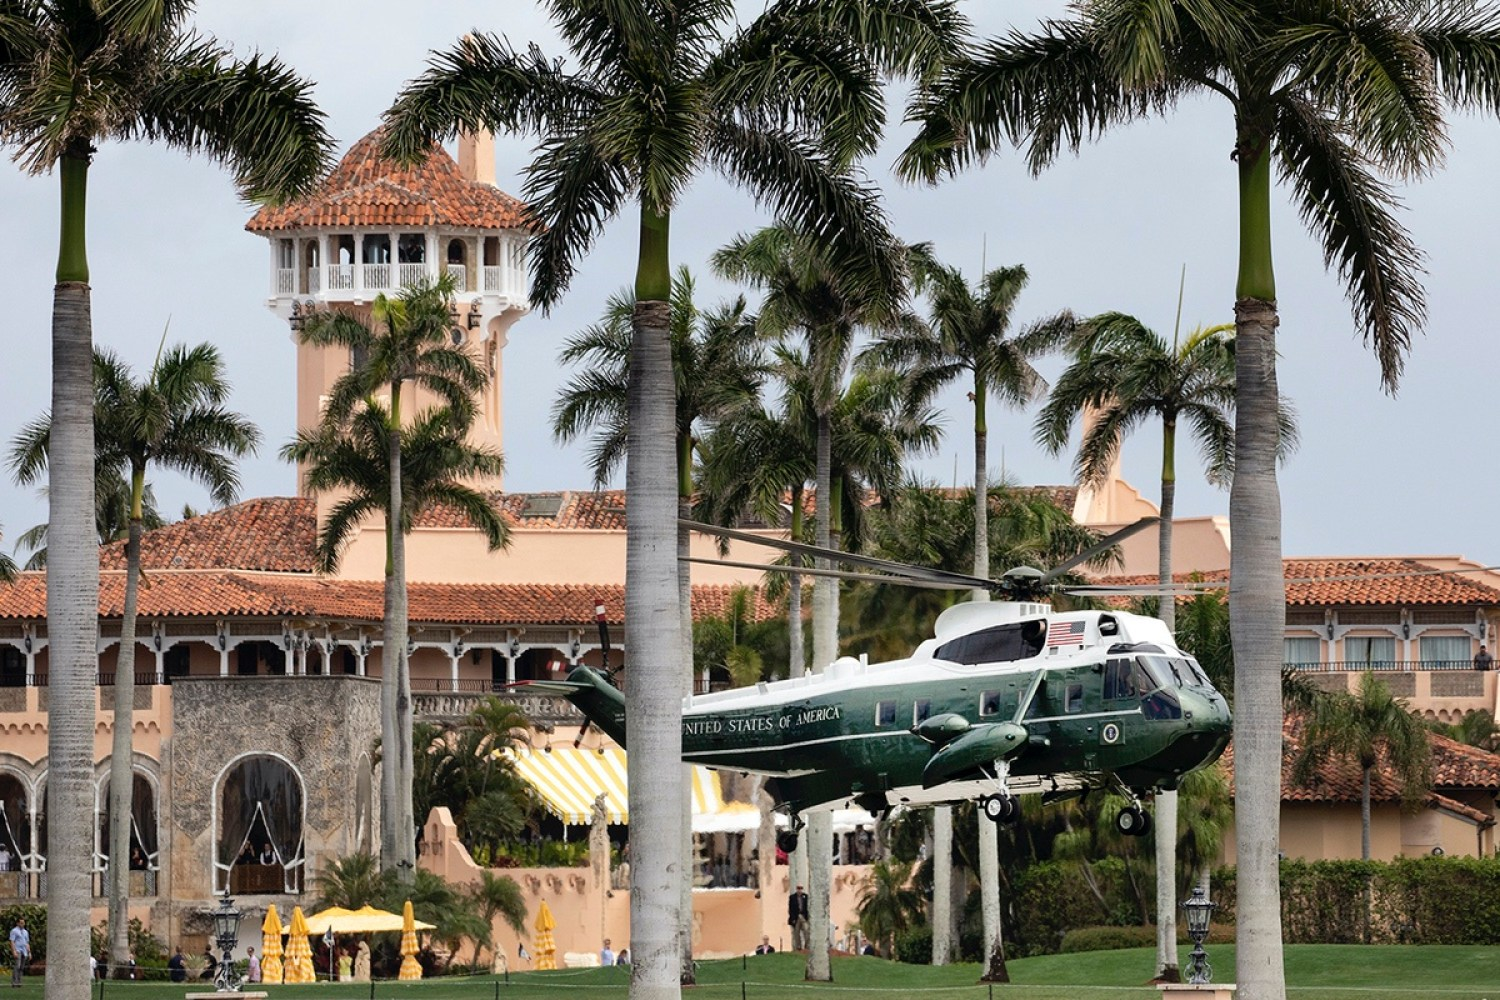 Marine One lifts-off after returning President Donald J. Trump to Mar-a-Lago Friday, March 29, 2019. (Official White House Photo by Joyce N. Boghosian)